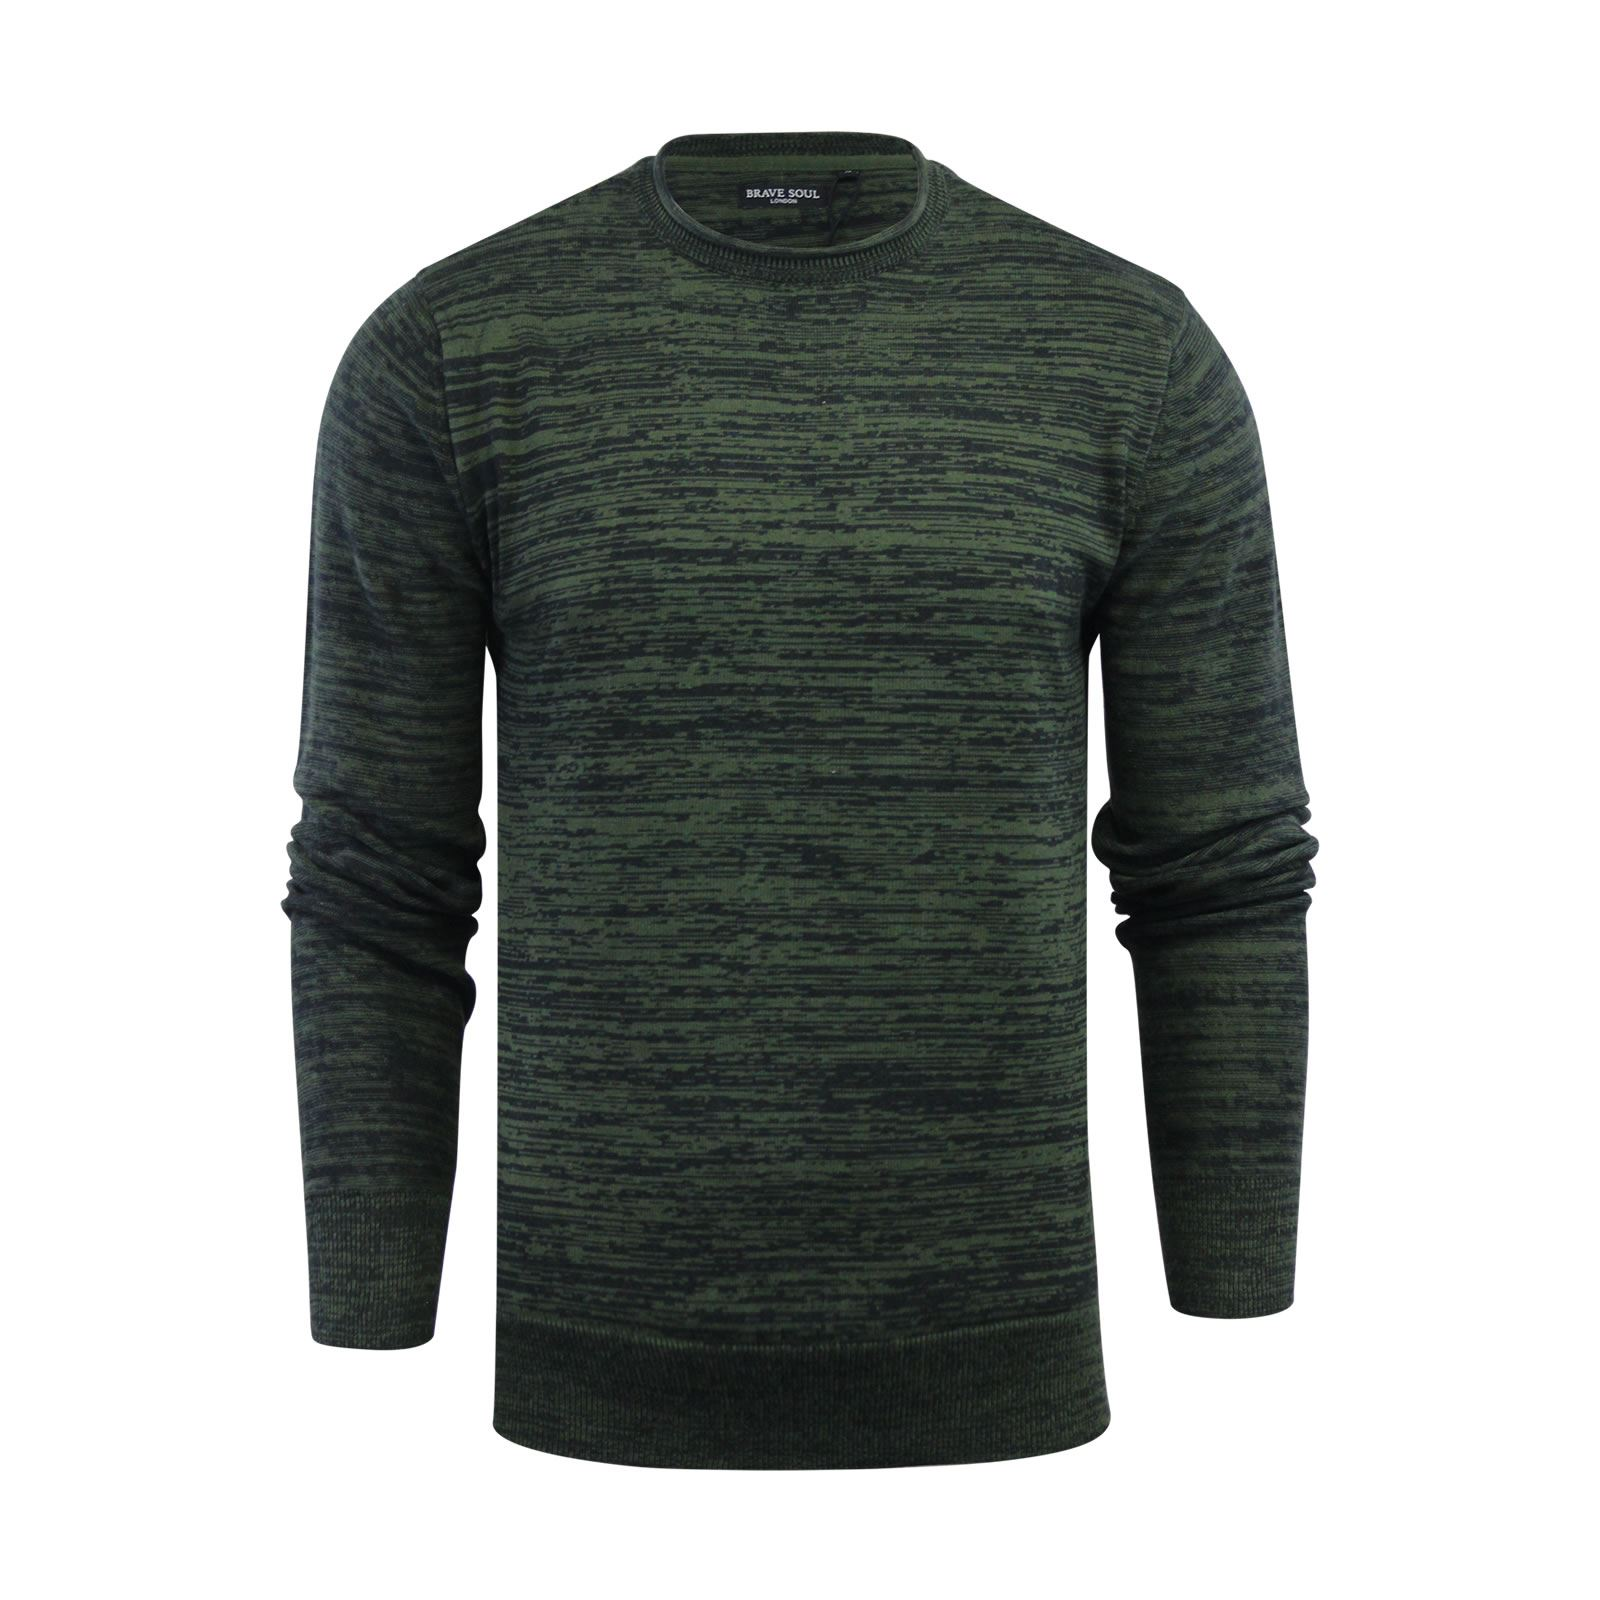 Mens-Jumper-Brave-Soul-Knitted-Sweater-In-Various-Styles thumbnail 10